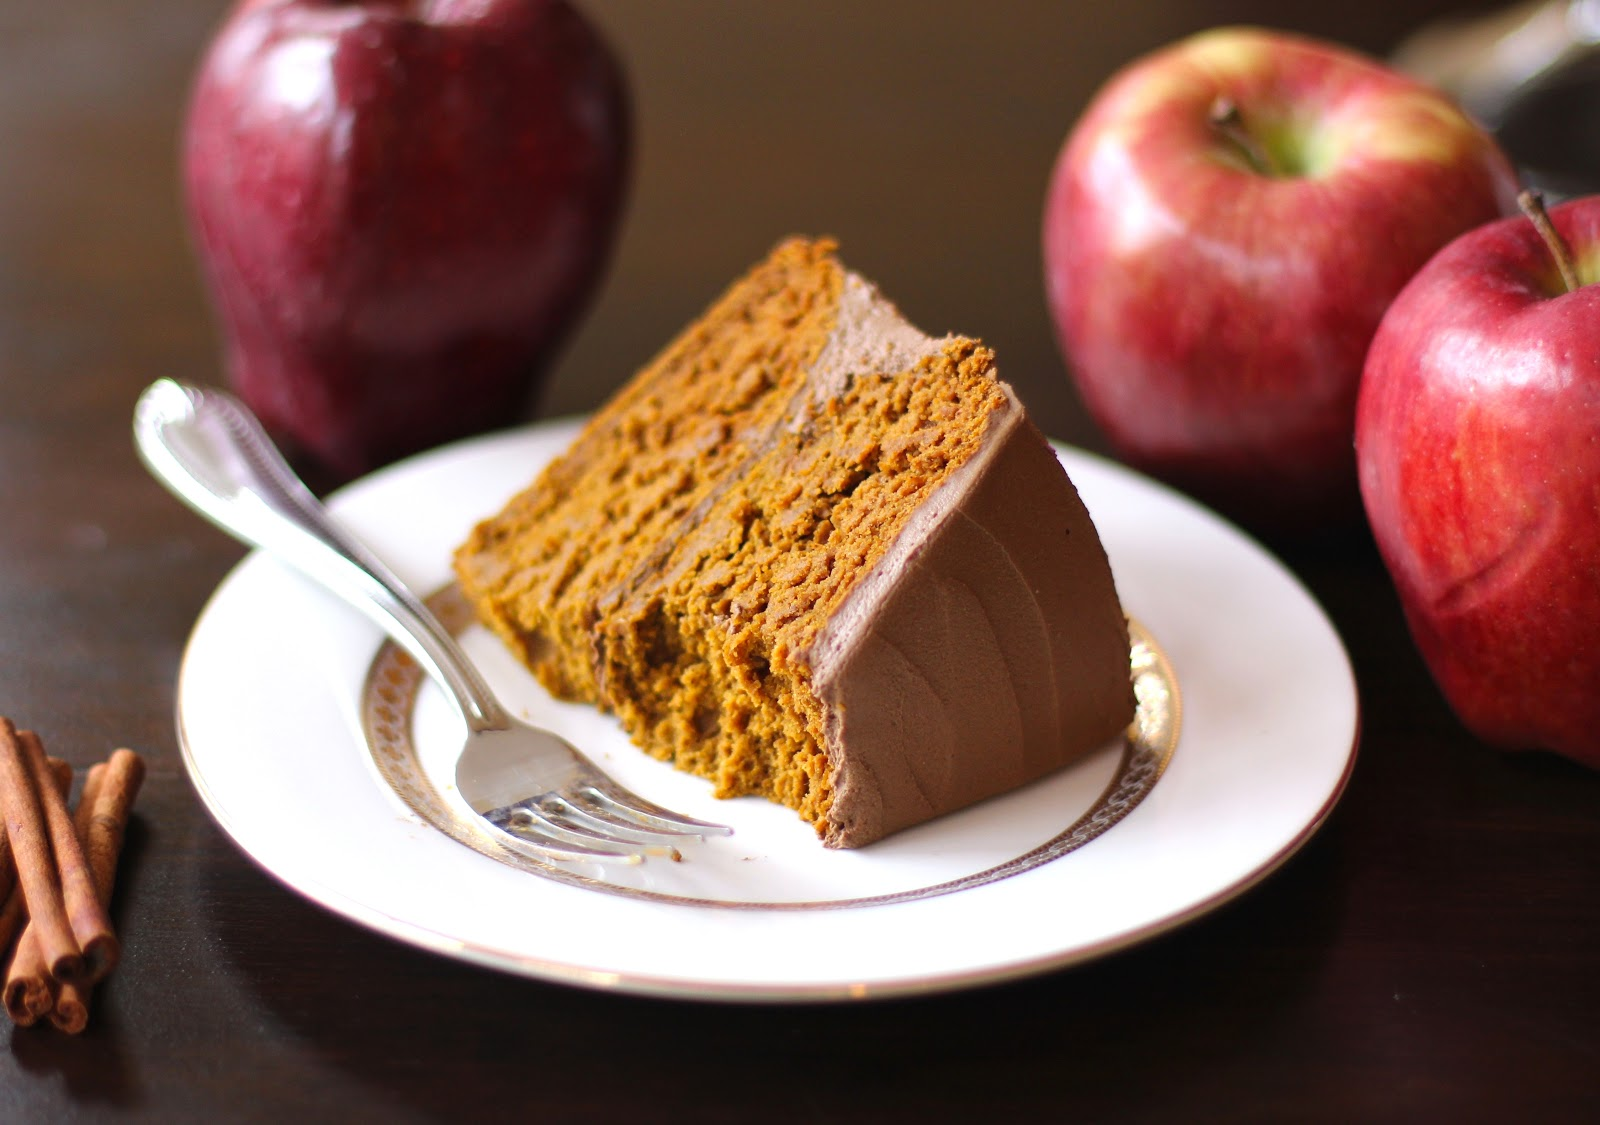 ... Benefits Healthy Pumpkin Orange Velvet Cake with Chocolate Frosting